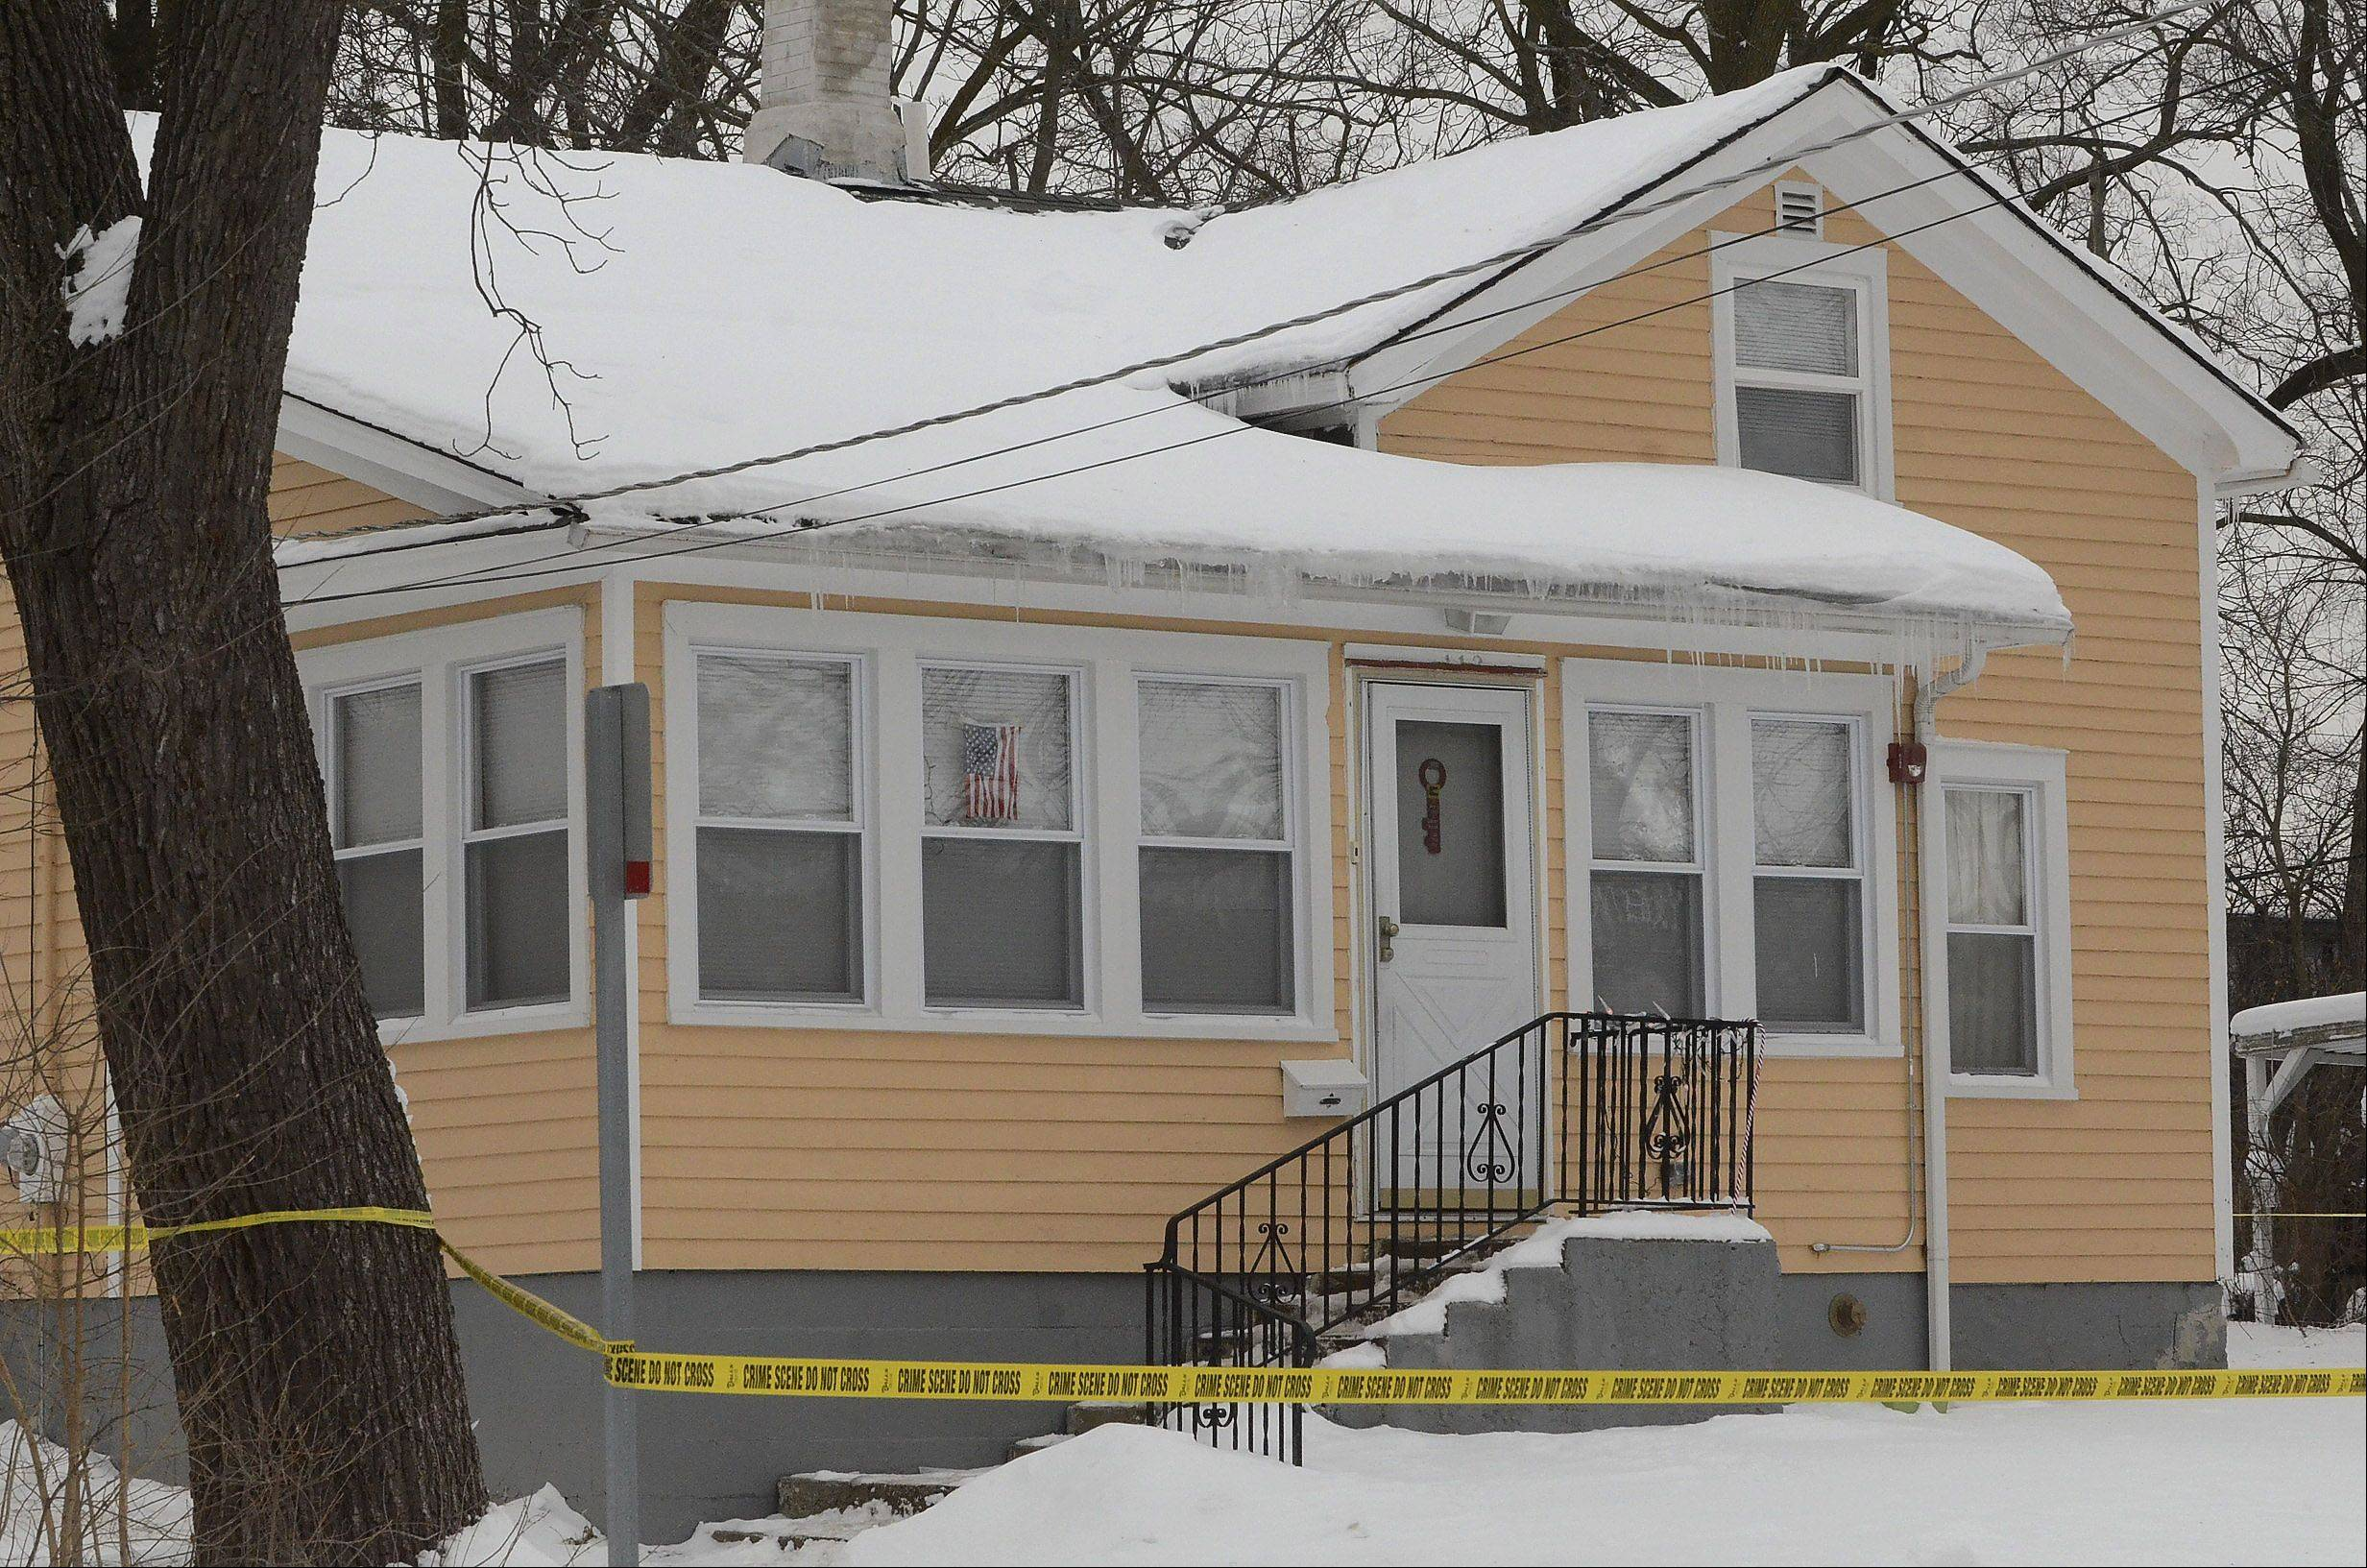 The house on the 100 block of South Hager Avenue in Barrington where the death of 7-month-old Mya Edwards was reported Wednesday afternoon.